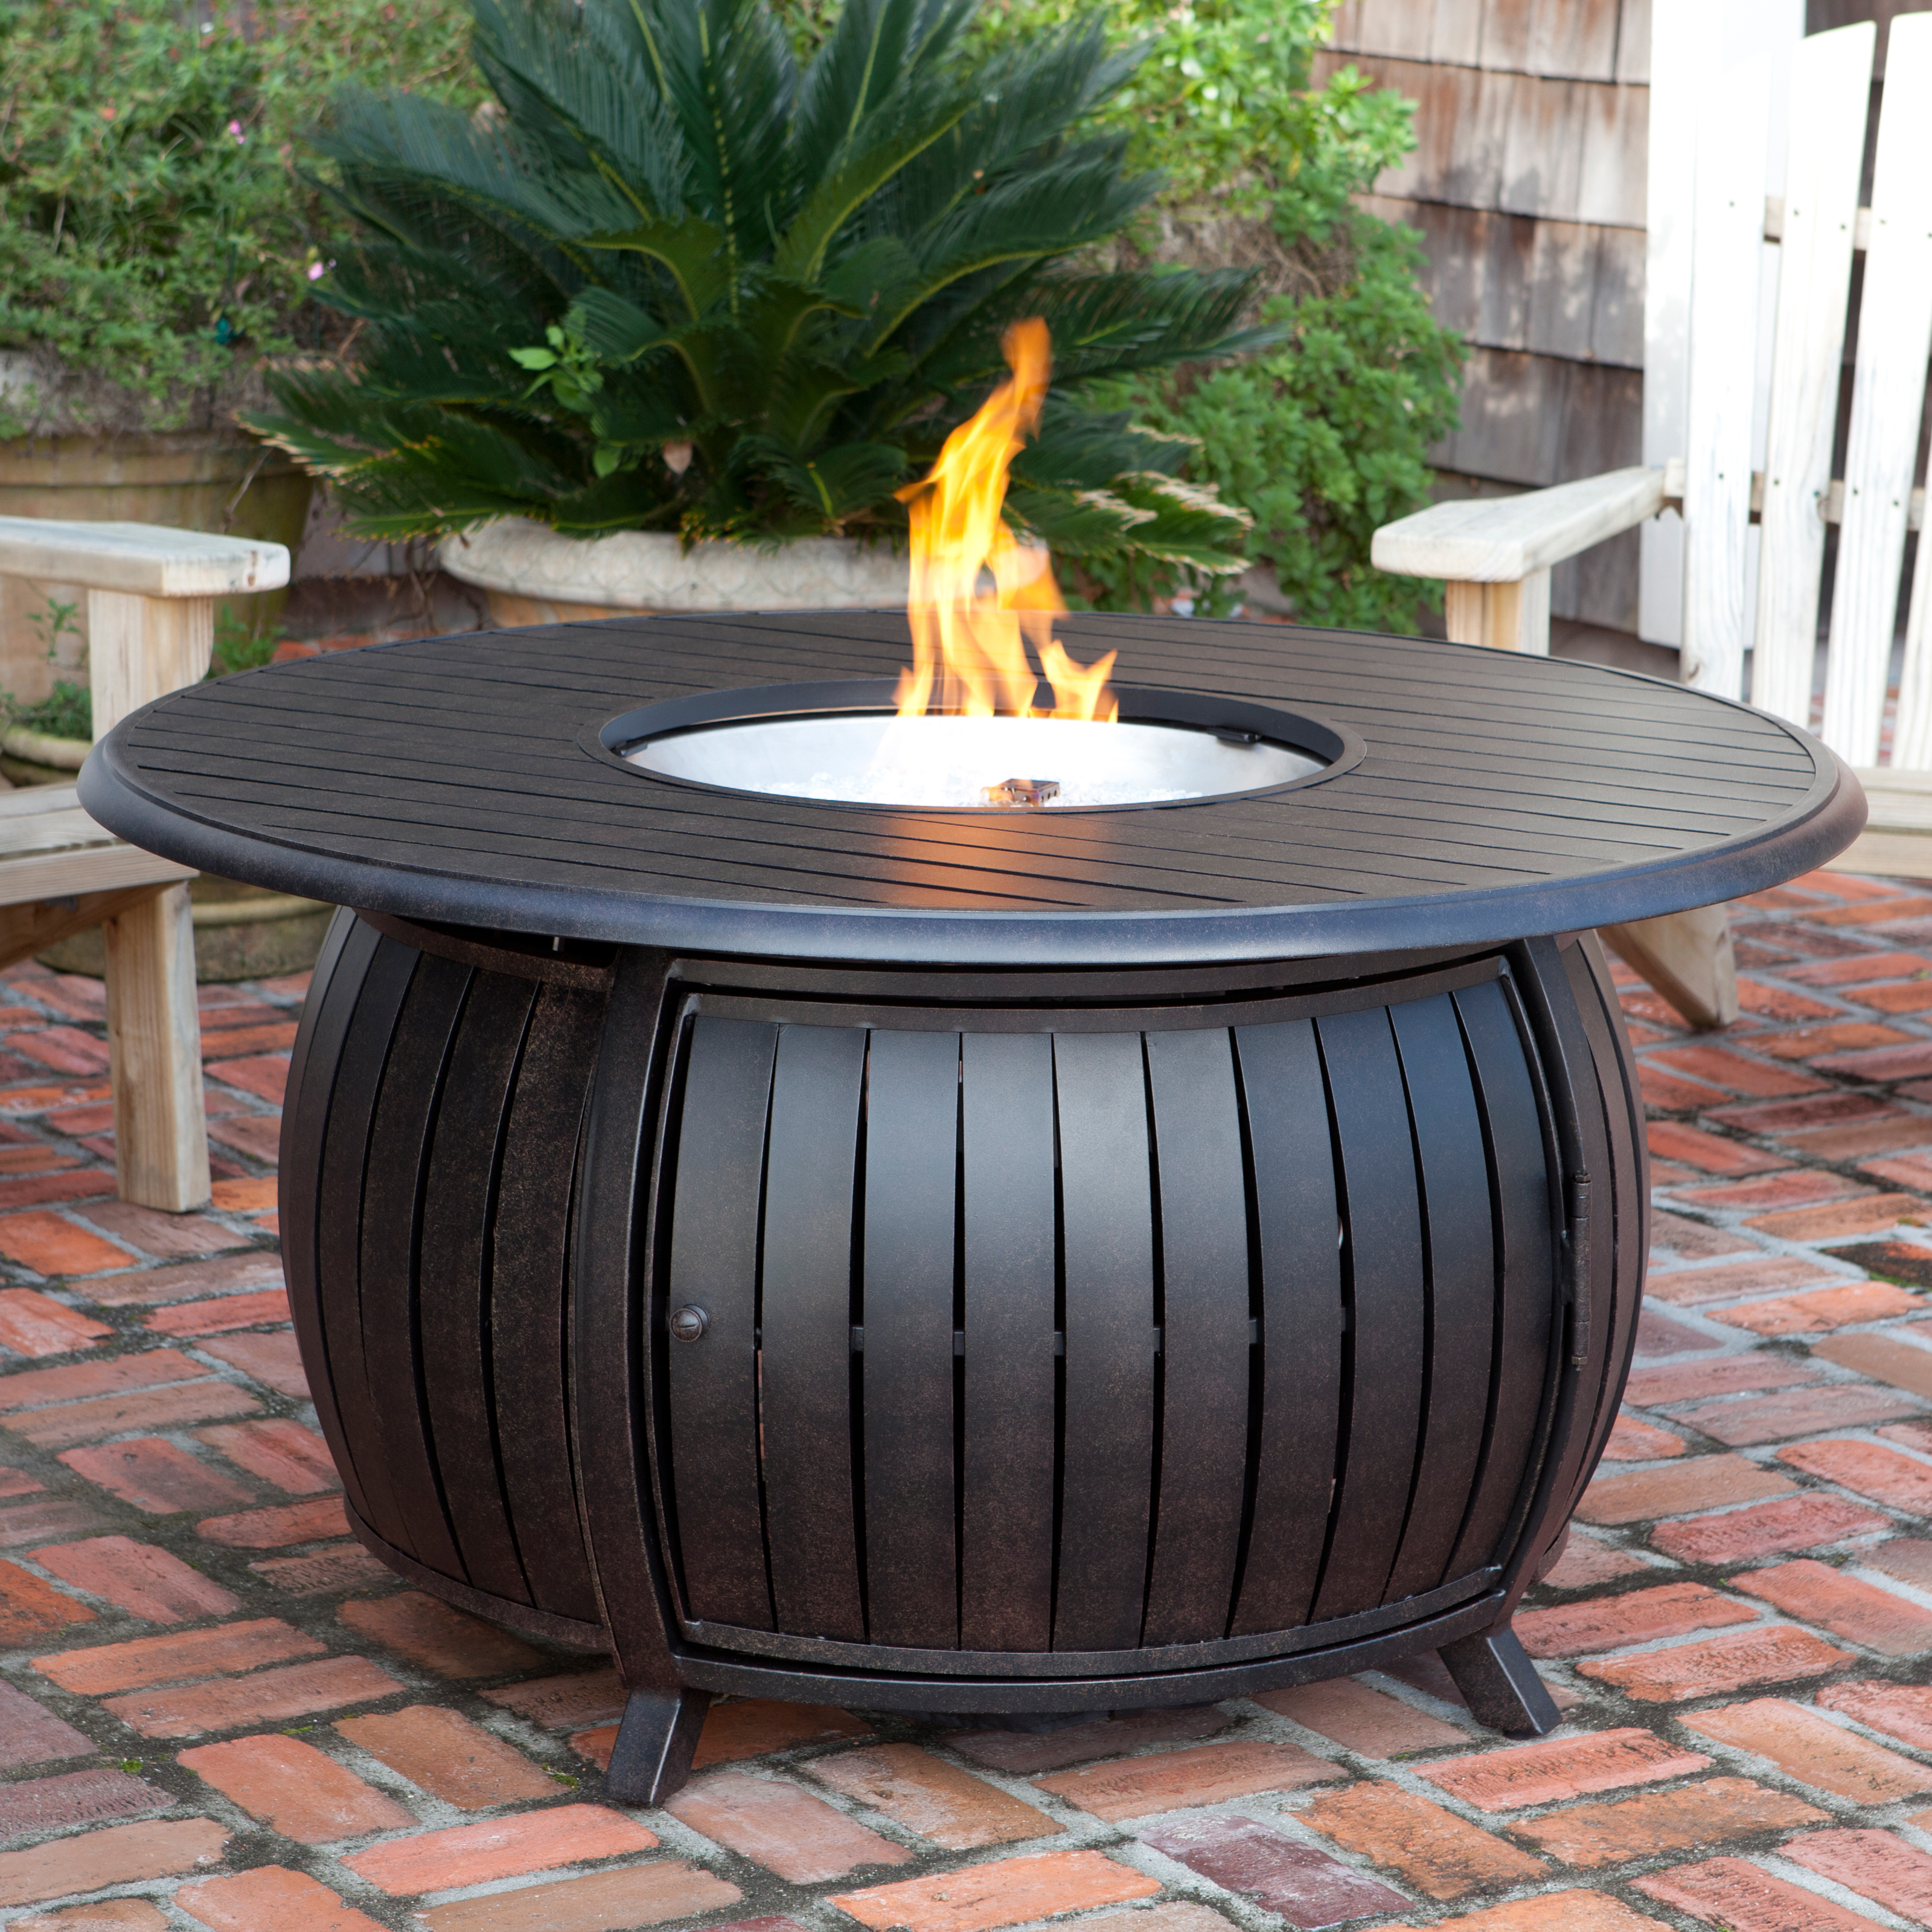 inspirational propane tank fire pit images bathroom ideas